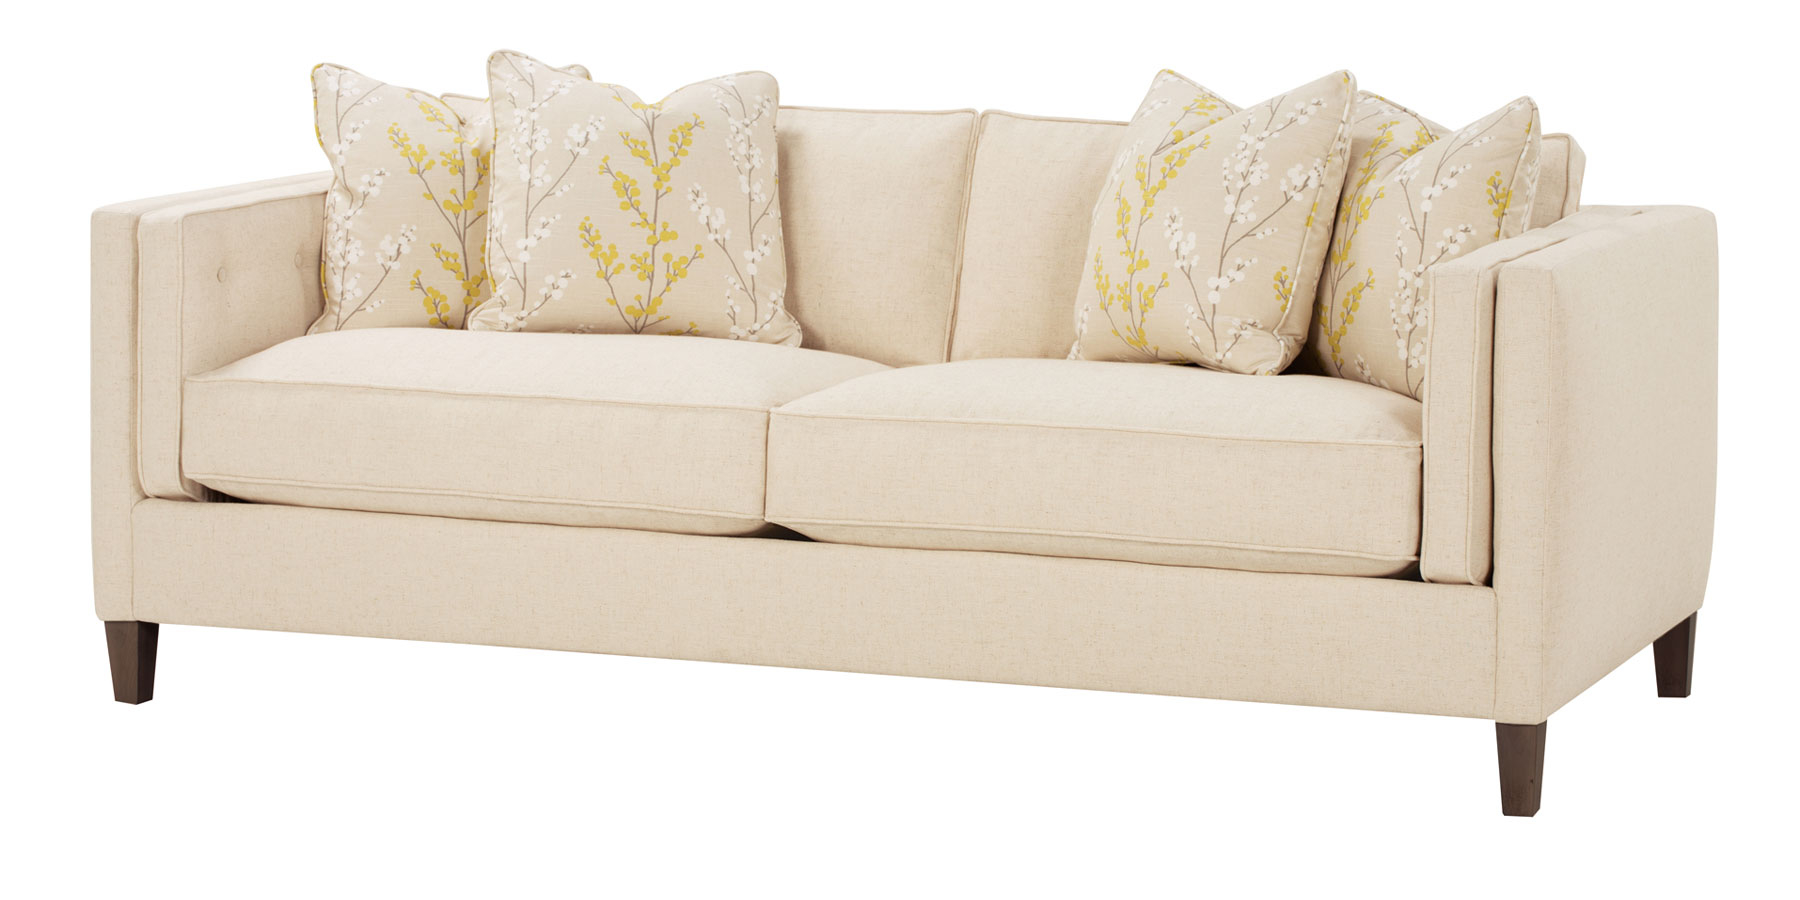 Popular Floral Pattern Sofa Pillow (Image 17 of 20)